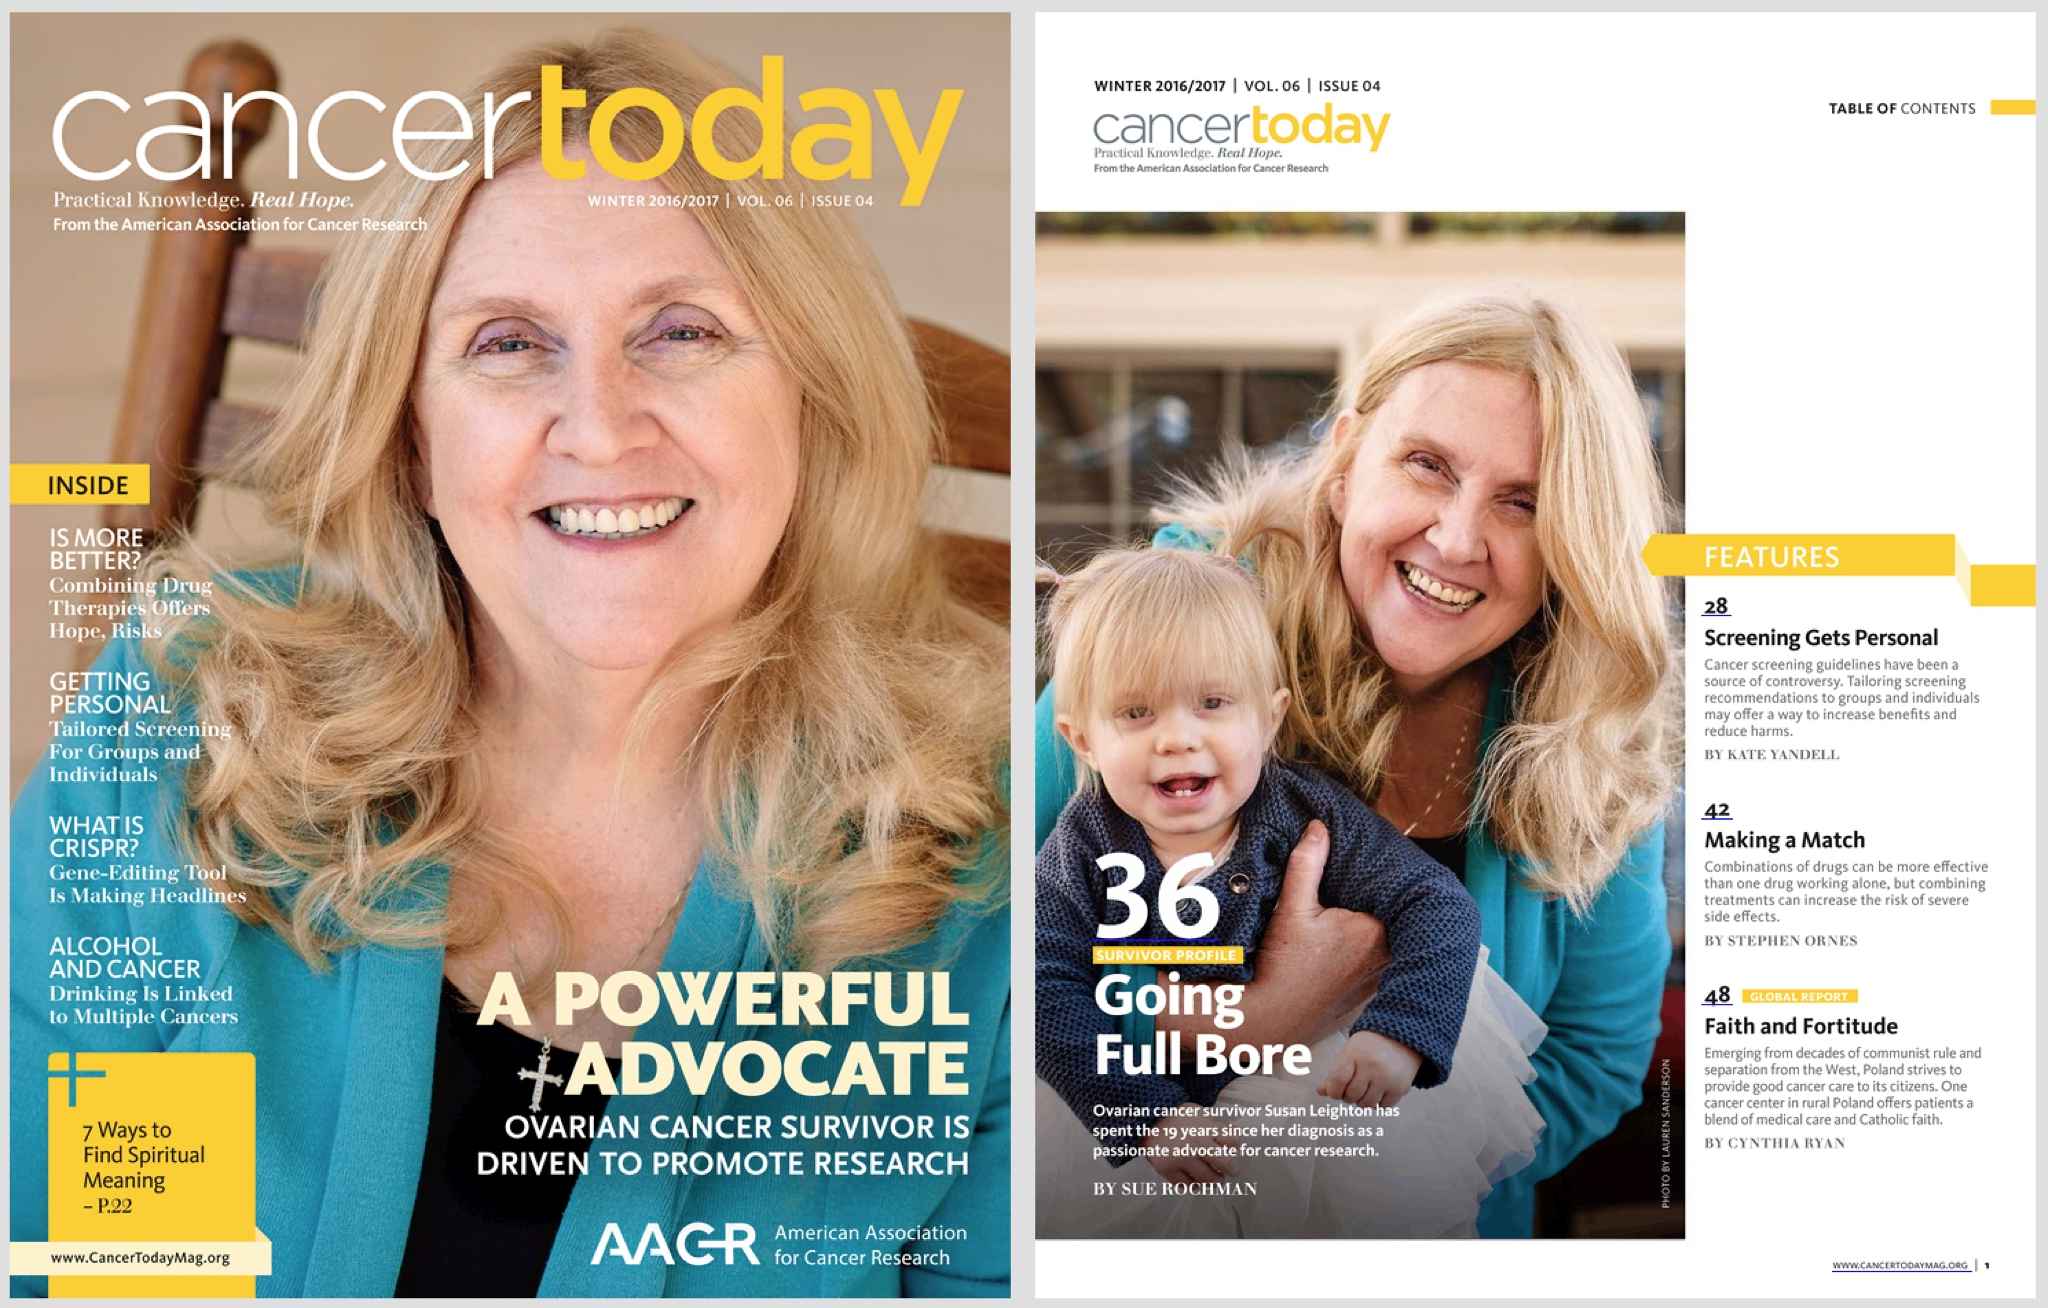 Cancer Today Magazine,National Syndication - www.cancertodaymag.orgPublished quarterly by the American Association for Cancer Research, Cancer Today is the authoritative resource for cancer patients, survivors, family, and friends.I was contracted by Bates Creative out of Washington DC to photograph a local cancer survivor and her family, for a cover and feature story on their Winter 2016/2017 issue. With a short turnaround time for the issue, I delivered a 60-image contact sheet the afternoon of the session, and 8 retouched images the next day.